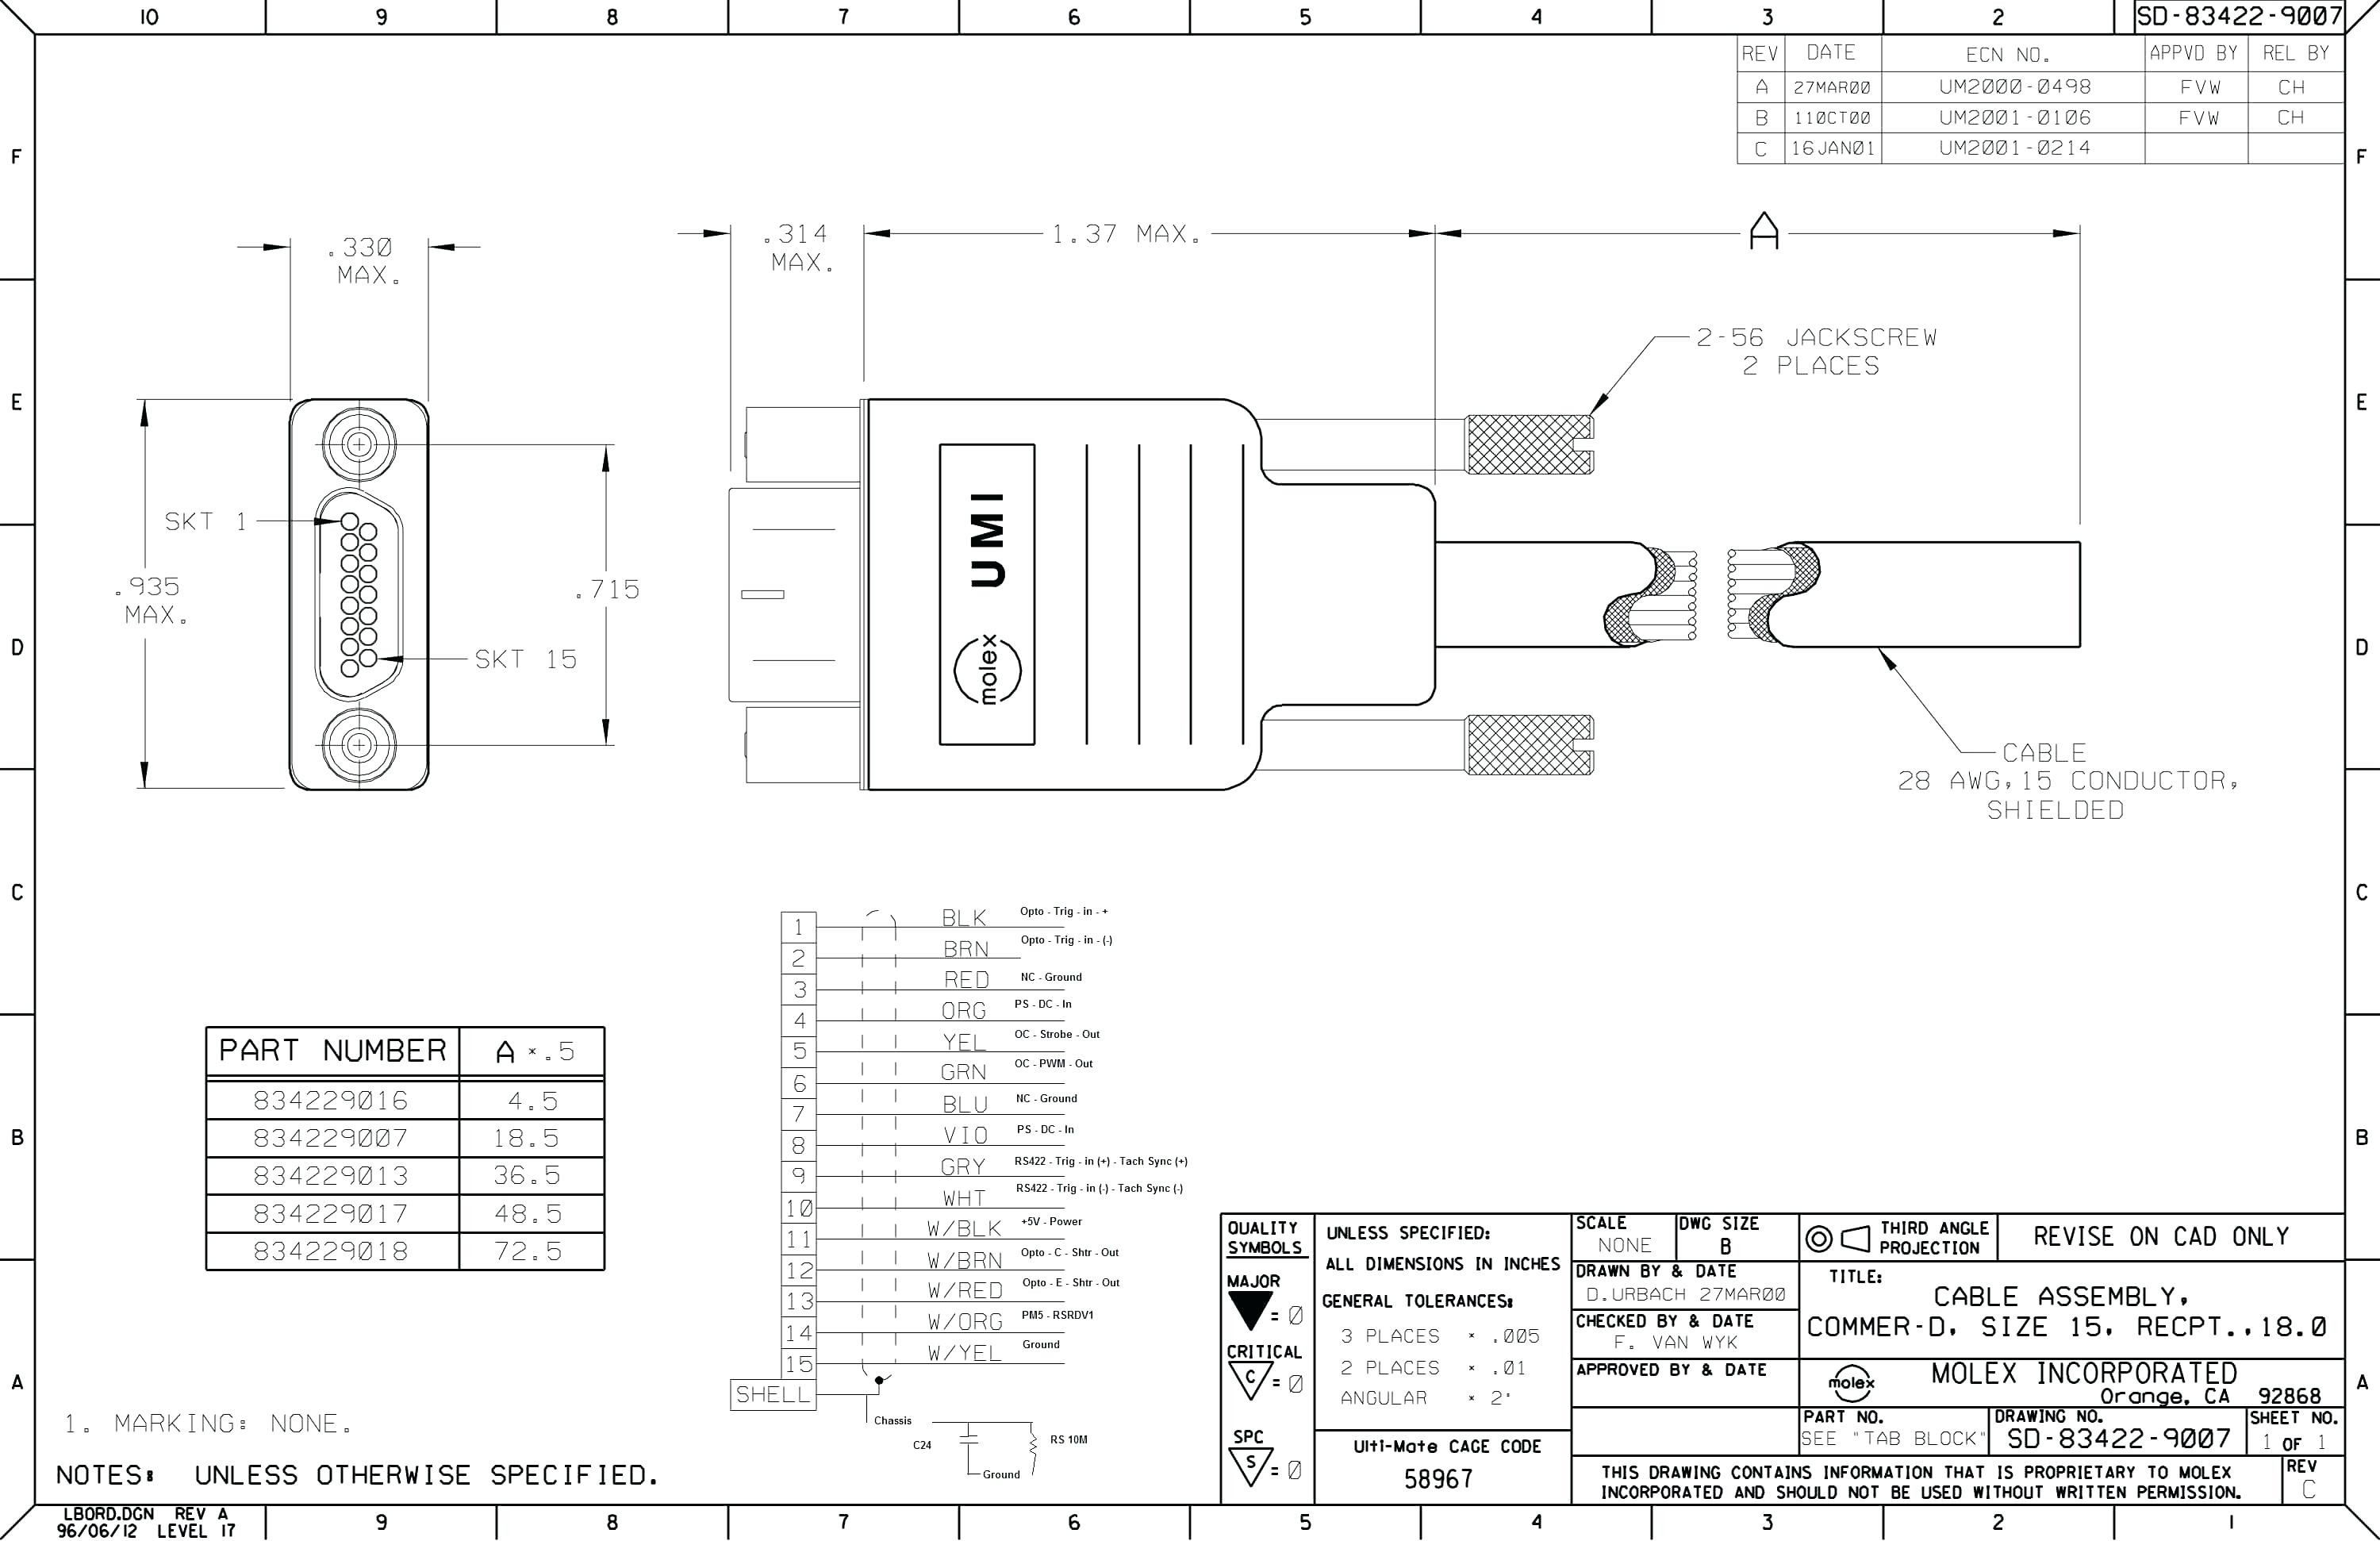 Cable Wiring Diagram Usb 30 3 0